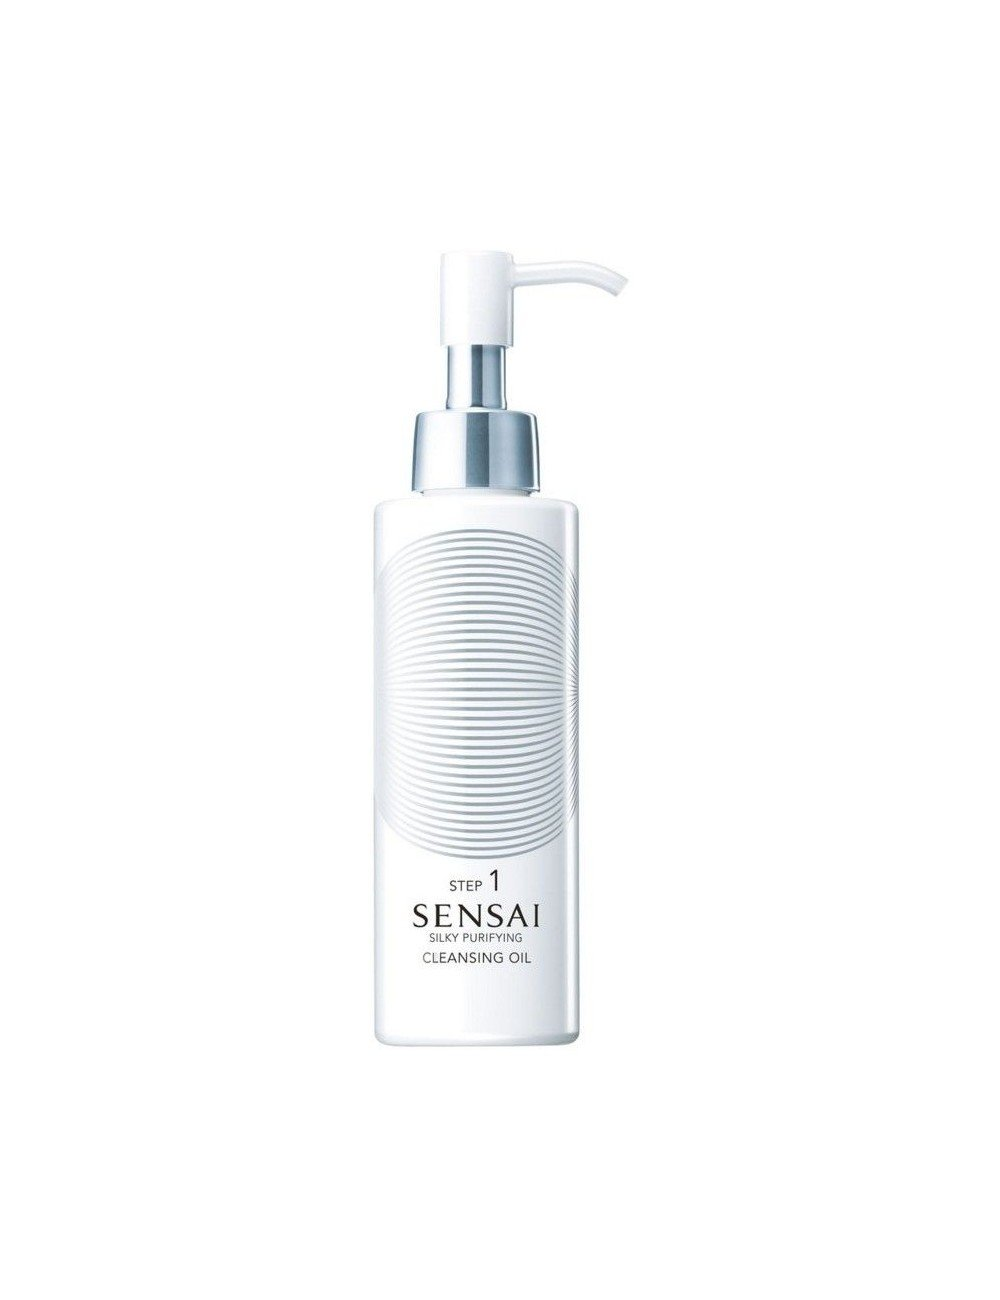 SENSAI SILKY PURIFYING CLEANSING OIL